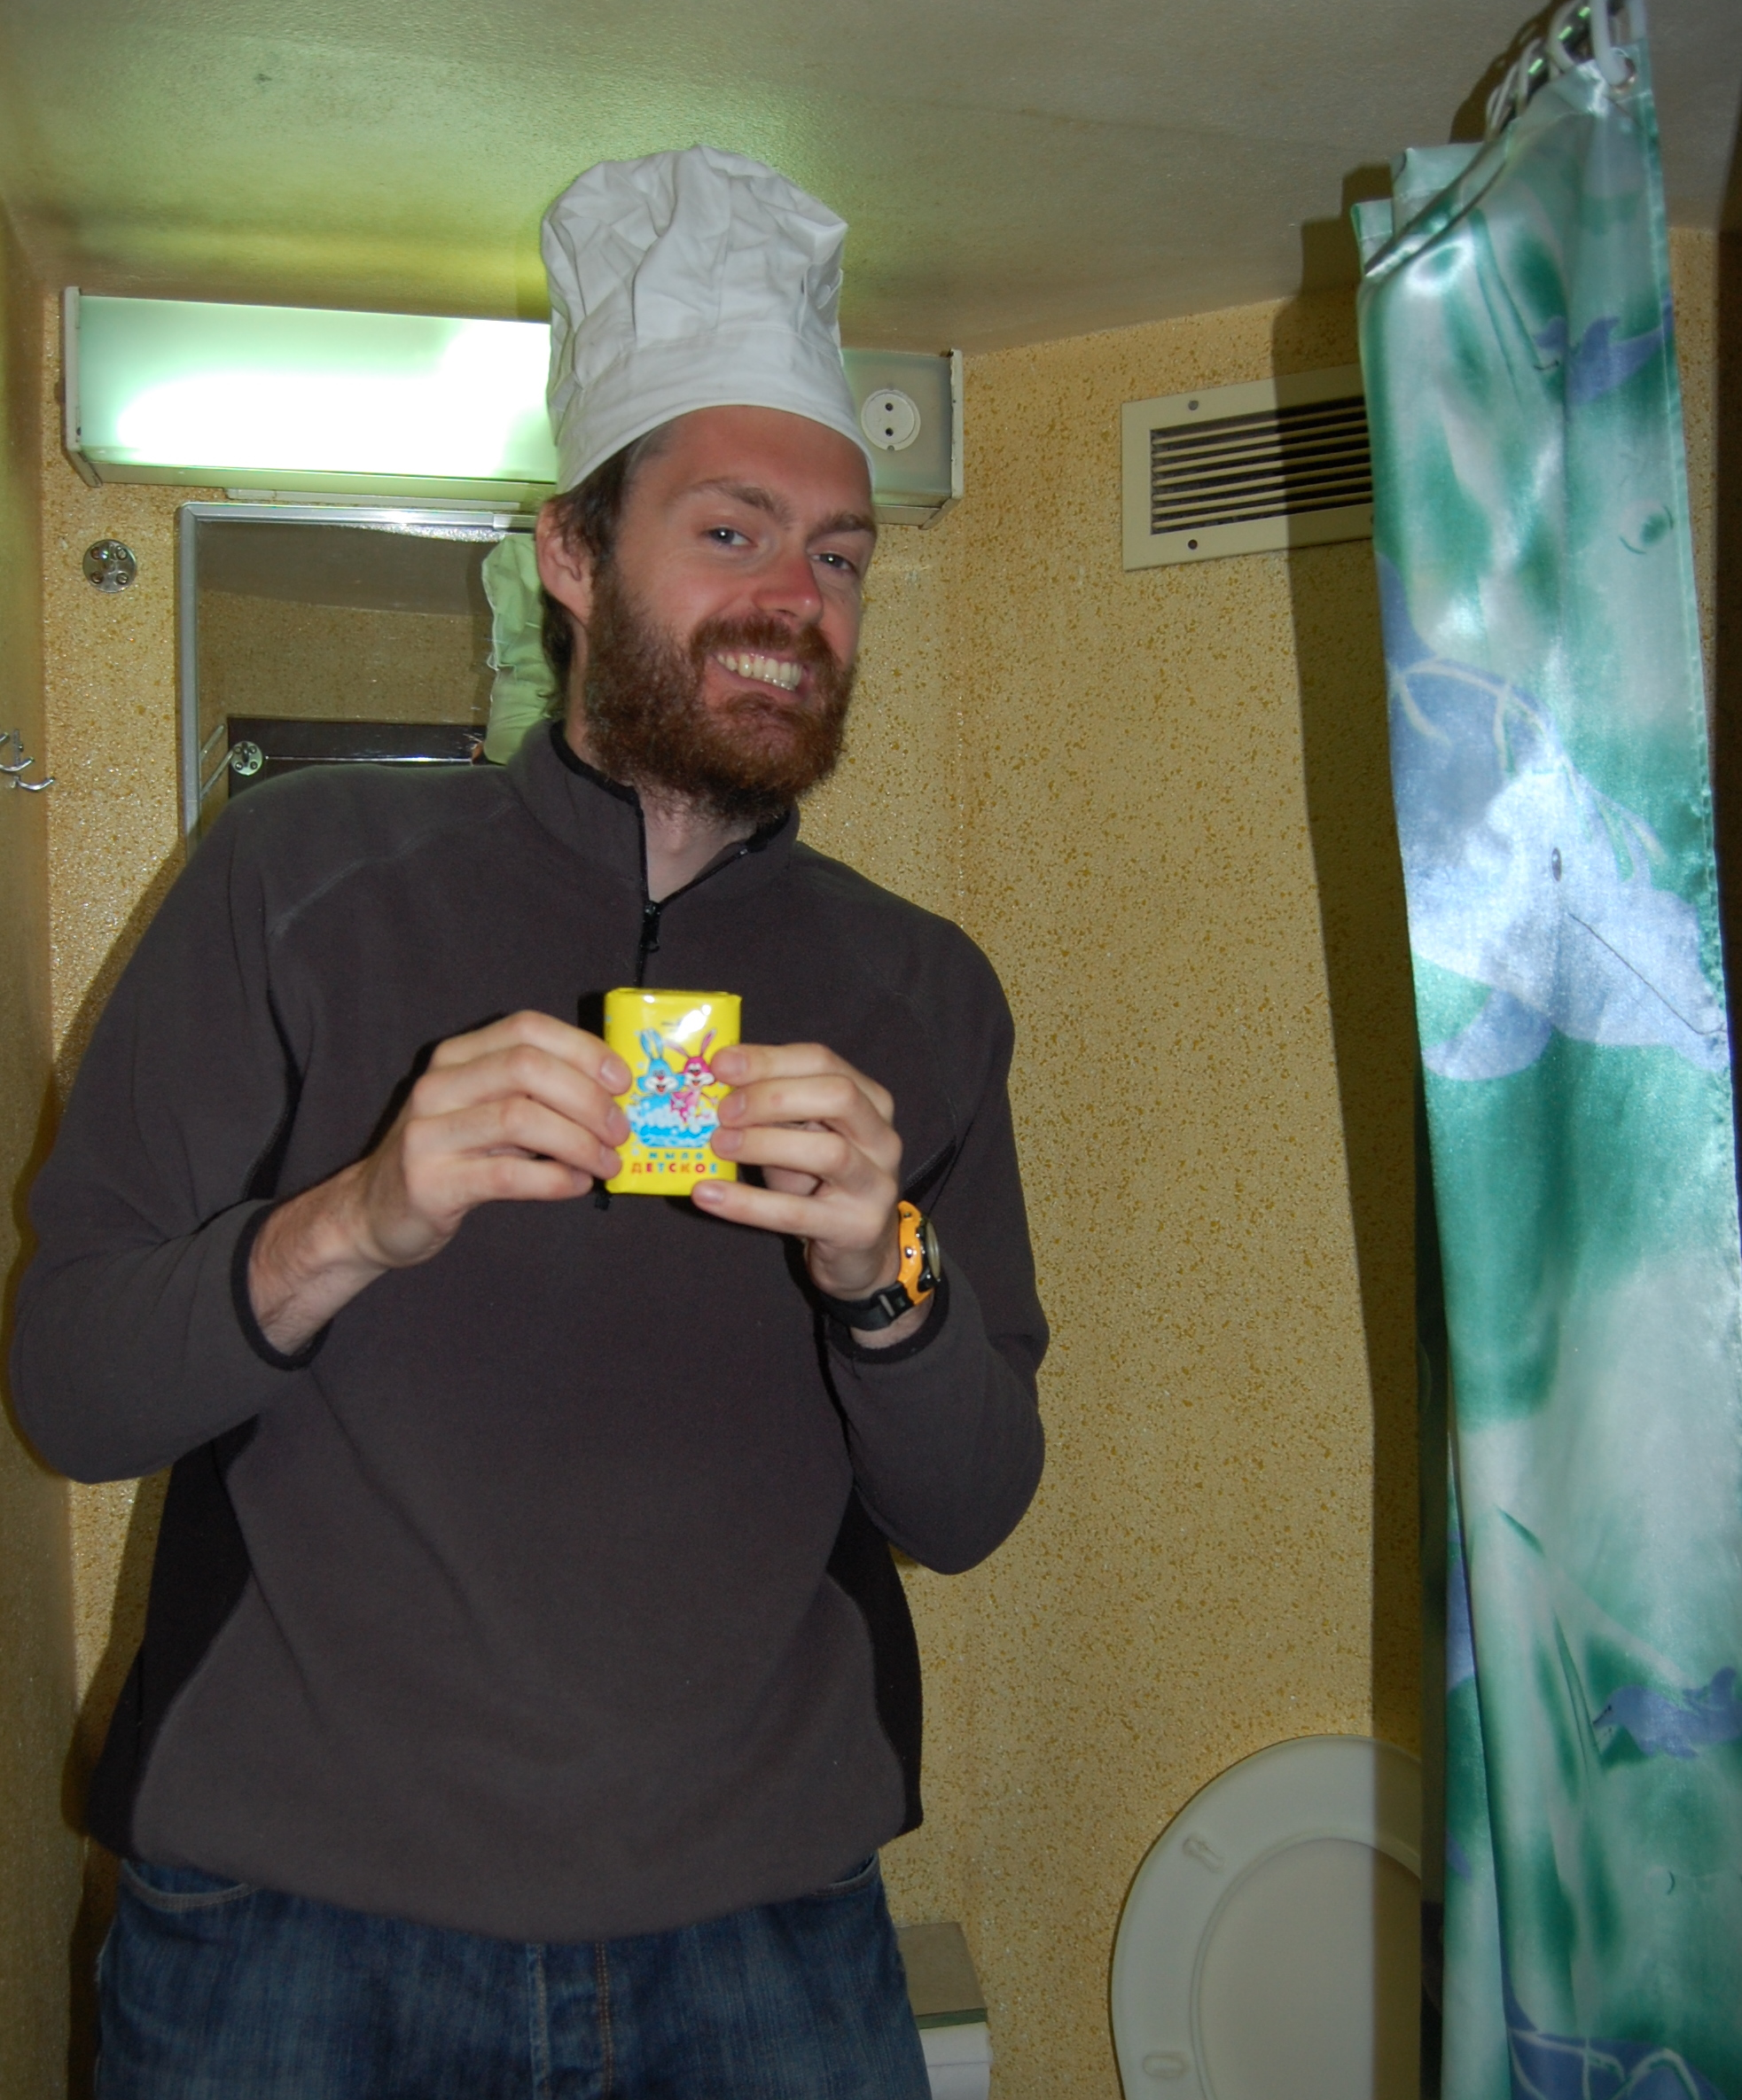 Chef with some great soap, Boat to Japan